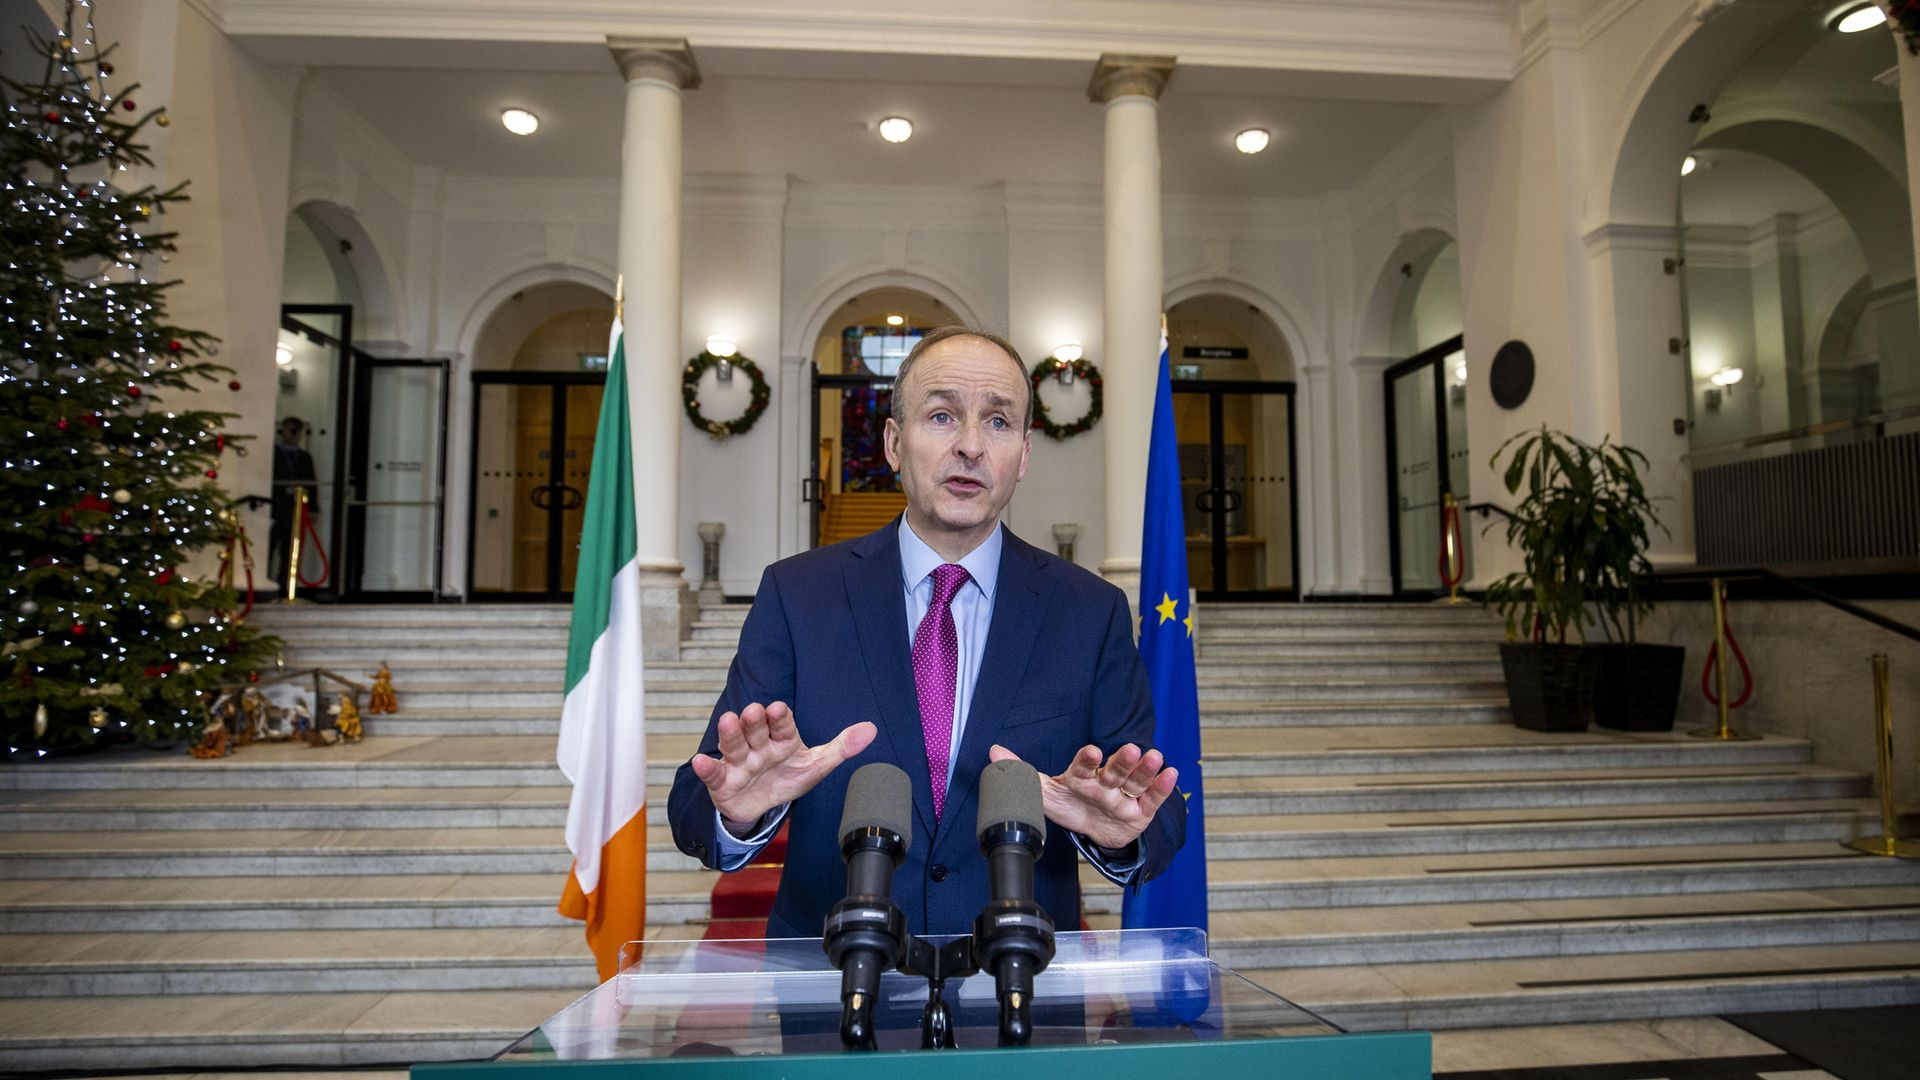 Taoiseach Michael Martin delivering an address to the nation on the latest update to lockdown restrictions at the government buildings, Dublin - Credit: PA/Julien Behal Photography